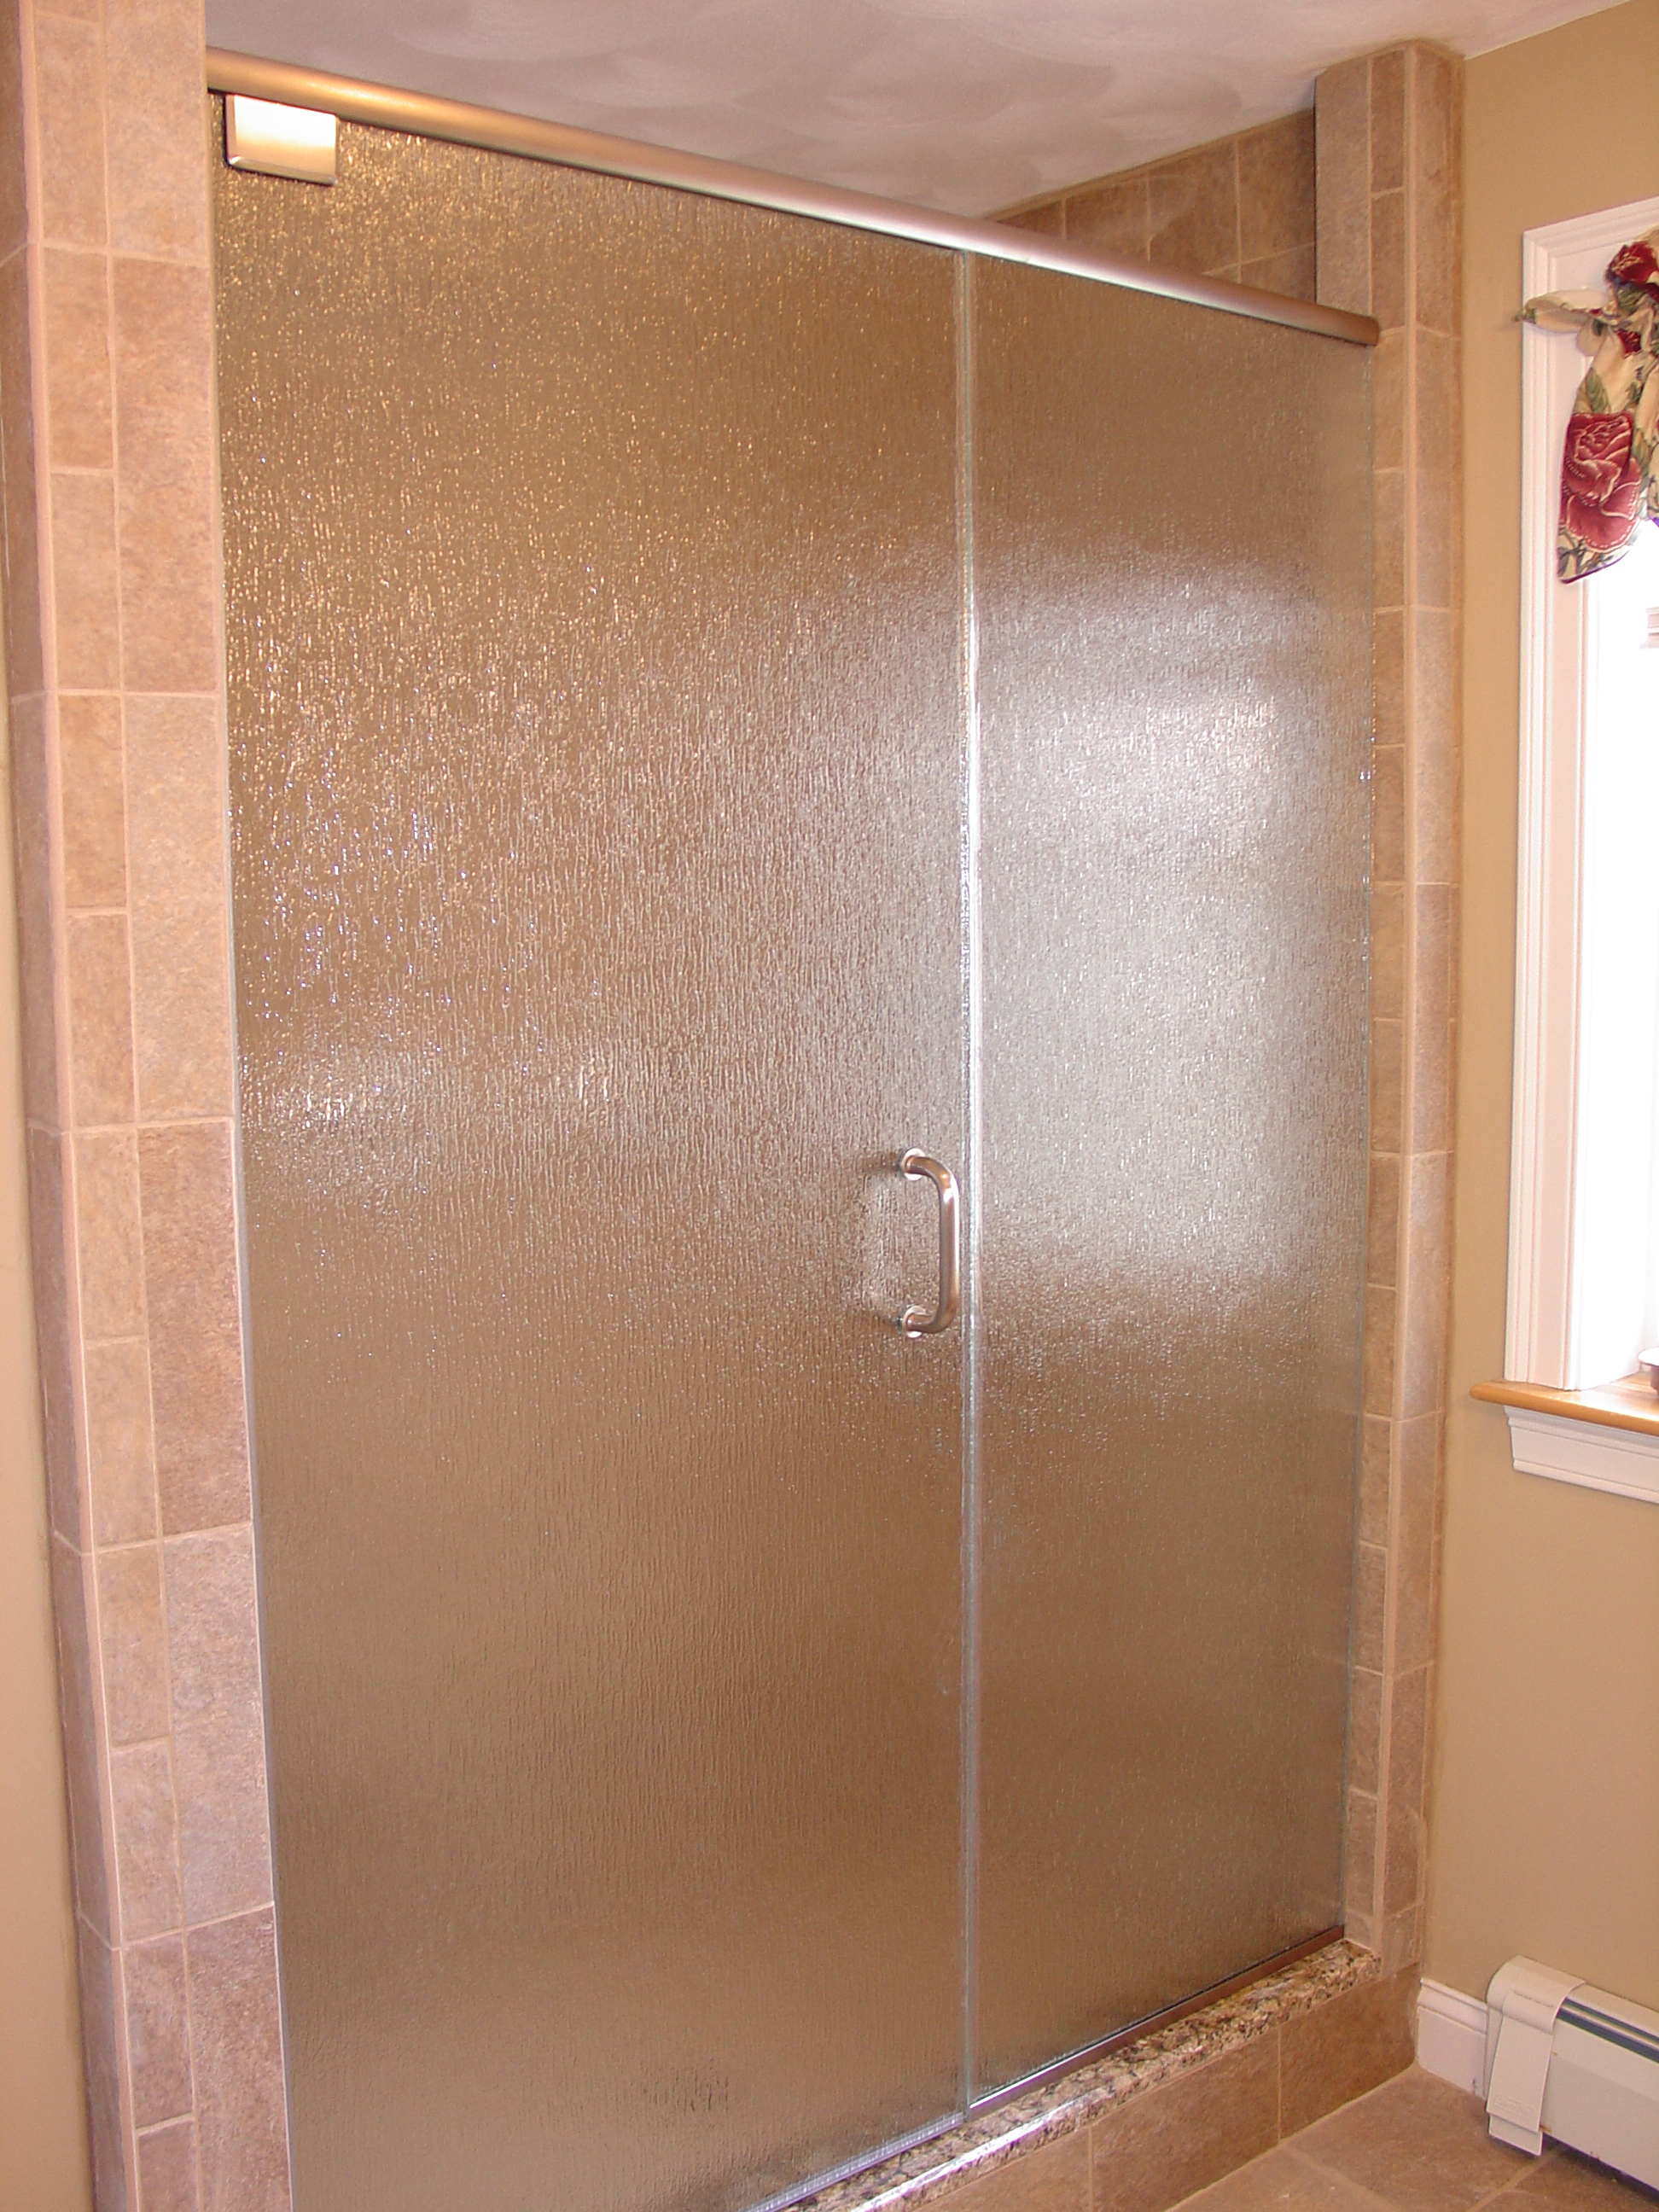 Heavy Shower Doors